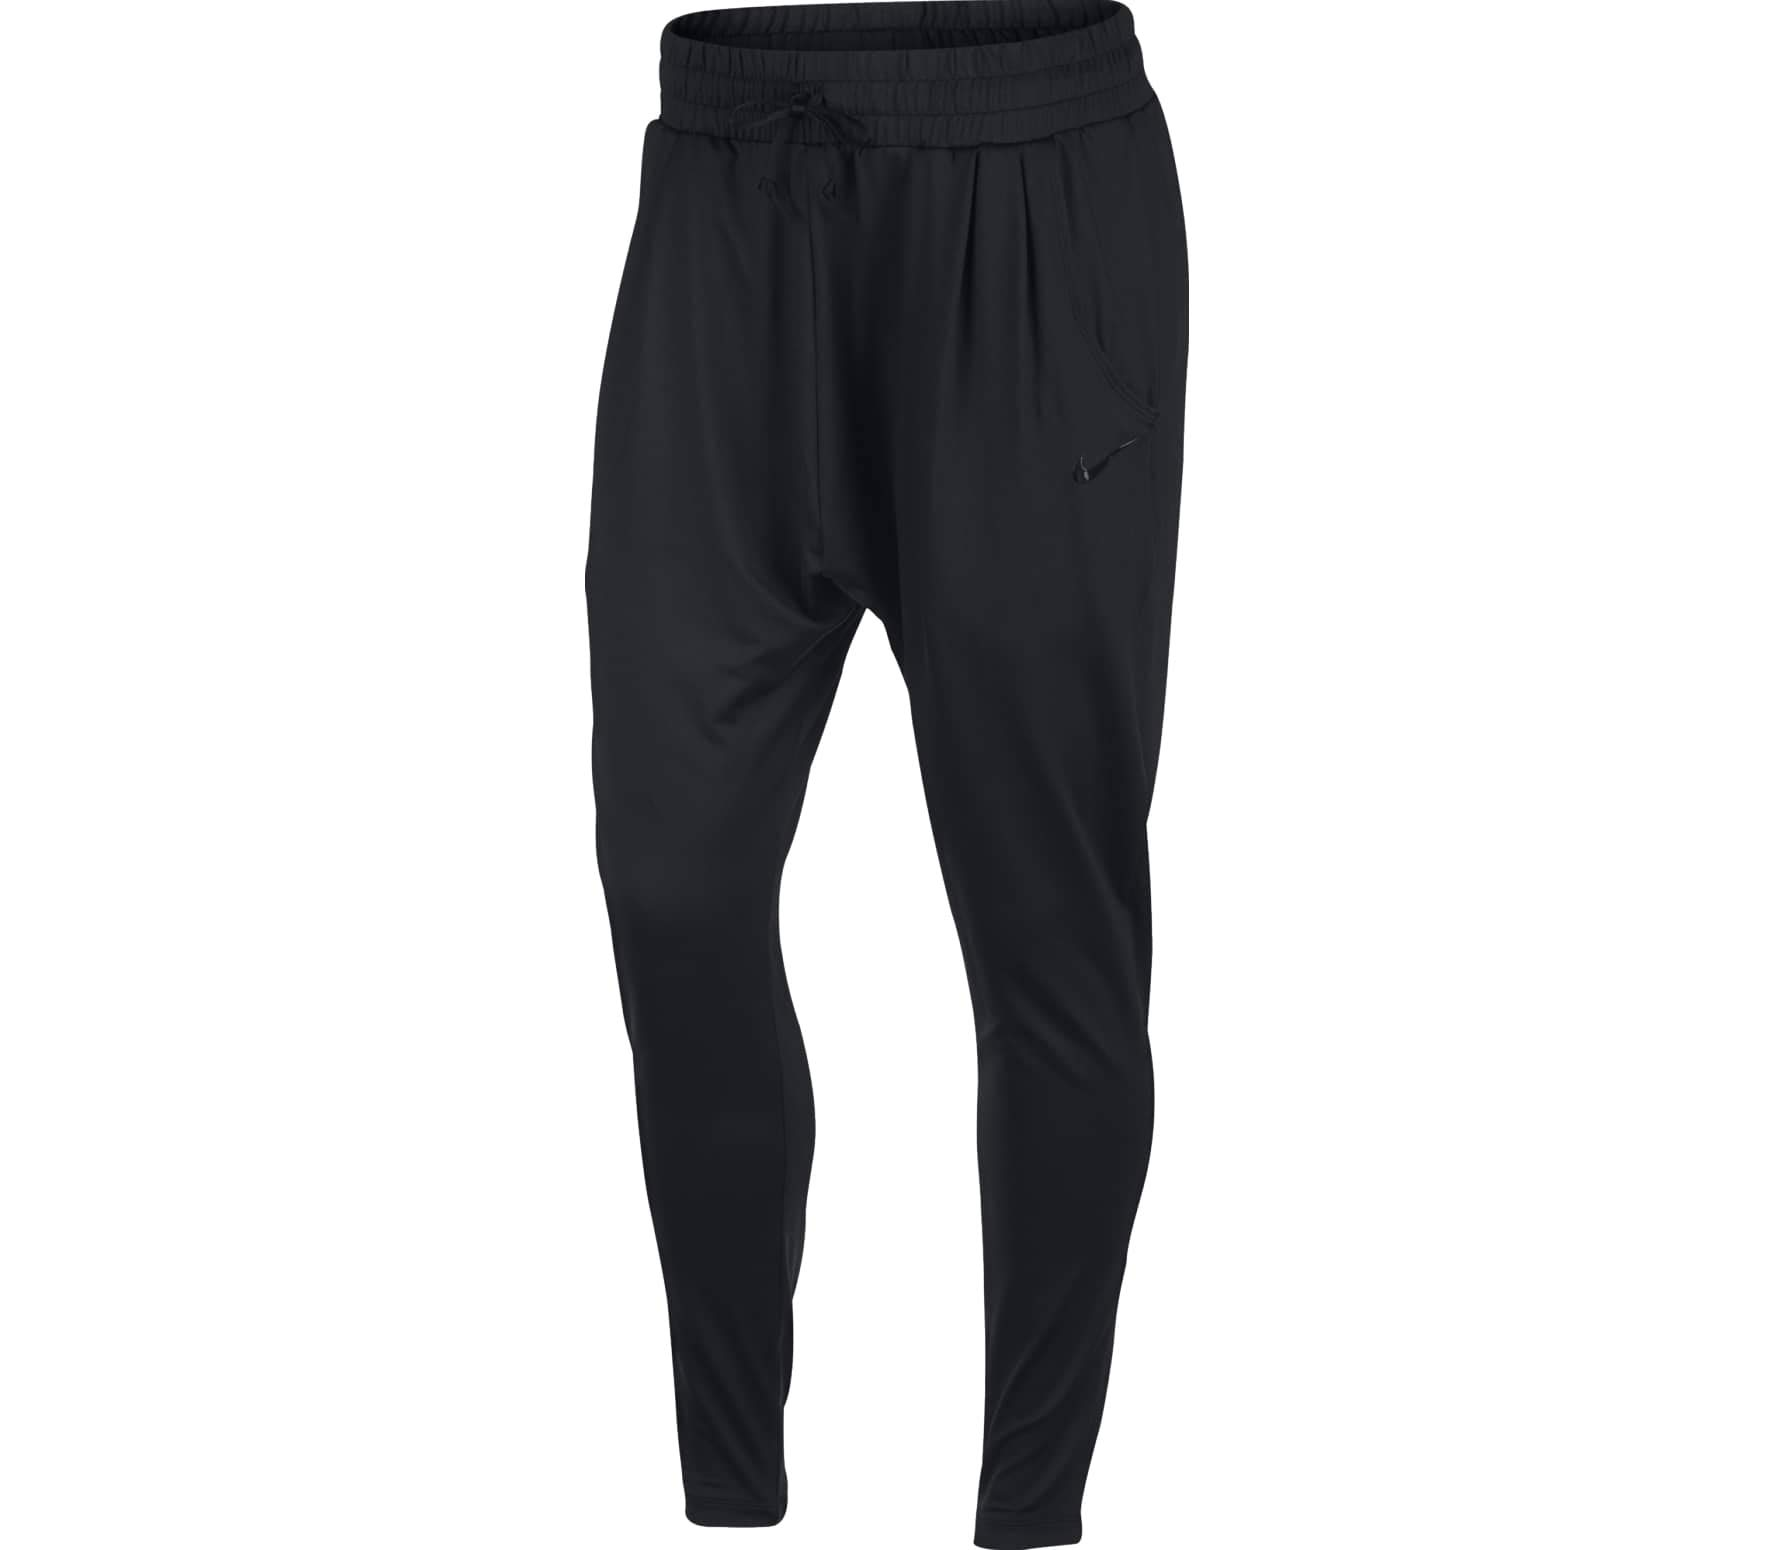 NIKE Dry Lux Flow Women's Training Trousers (Black, M) by Nike (Image #1)